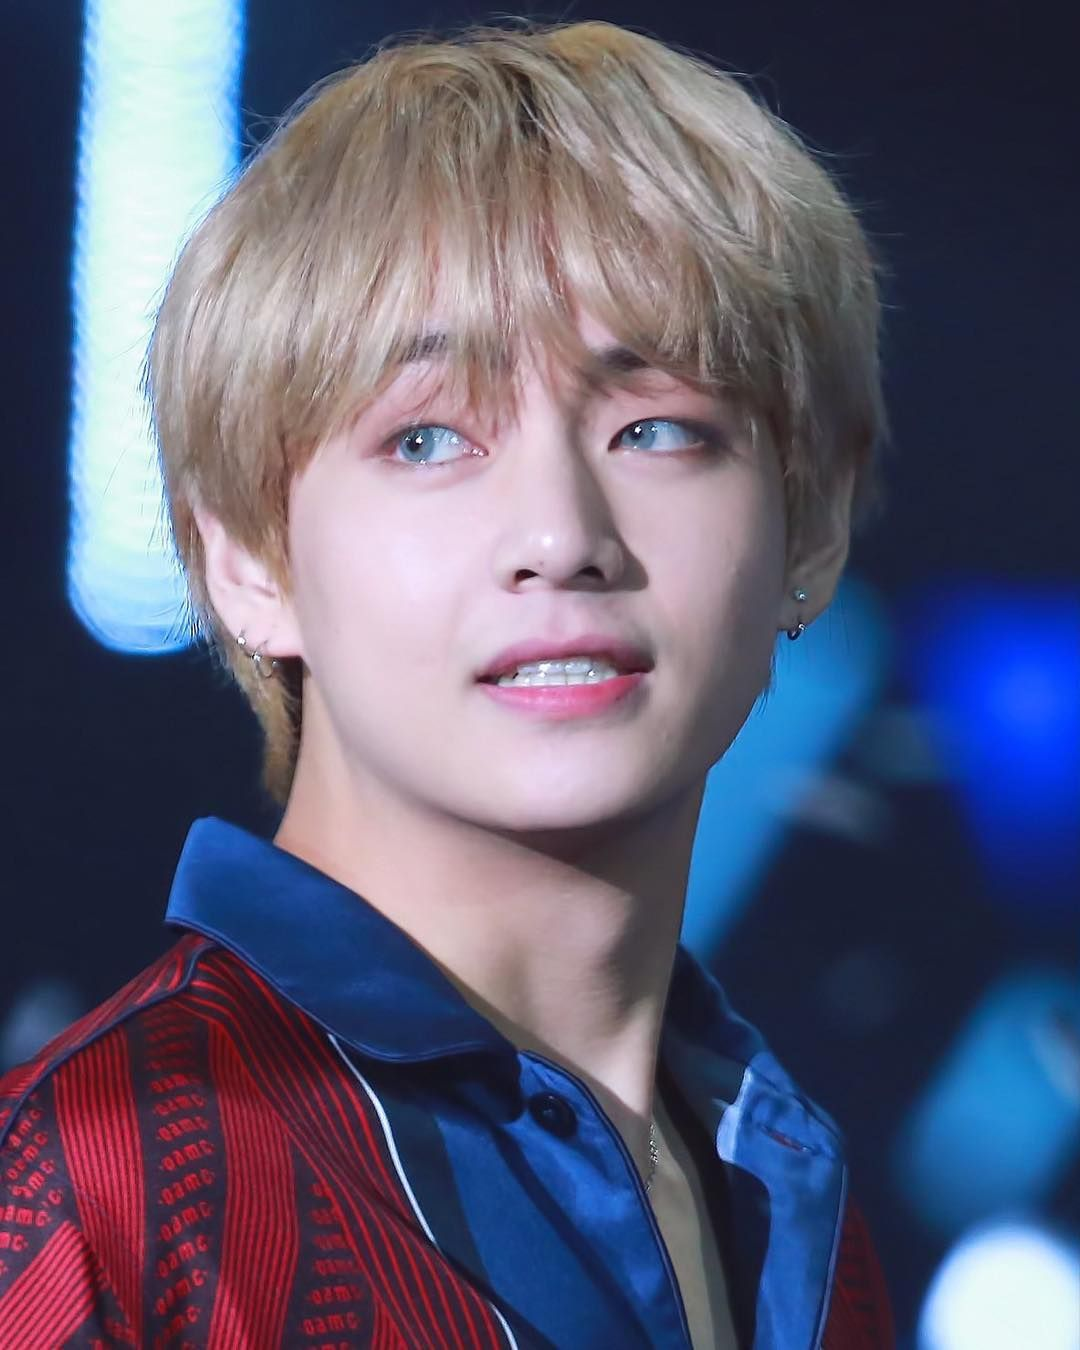 Most Handsome K Pop Male Idols Bts V Kim Tae Hyung Kpop K Pop Music K Pop Boy Groups Best K Pop Boy Bands Top Kim Taehyung Taehyung Silver Hair